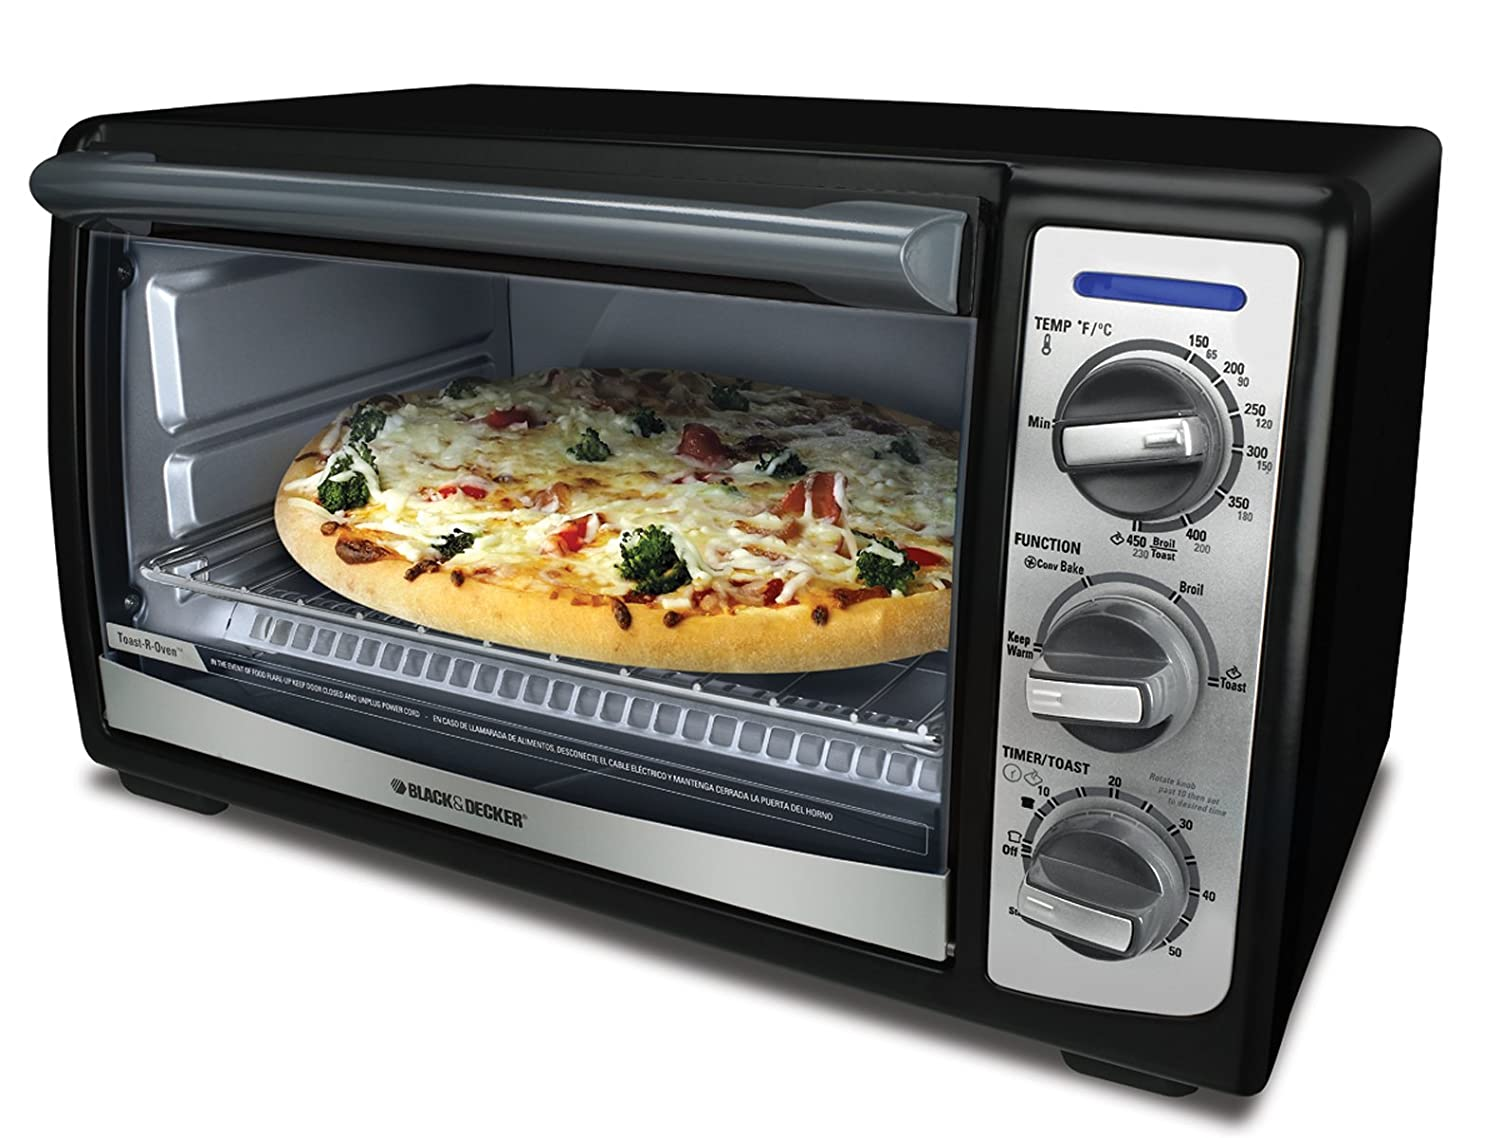 Countertop Oven Baking : ... Kitchen Countertop Convection Toaster Oven - Toast, Bake, Broil & Warm